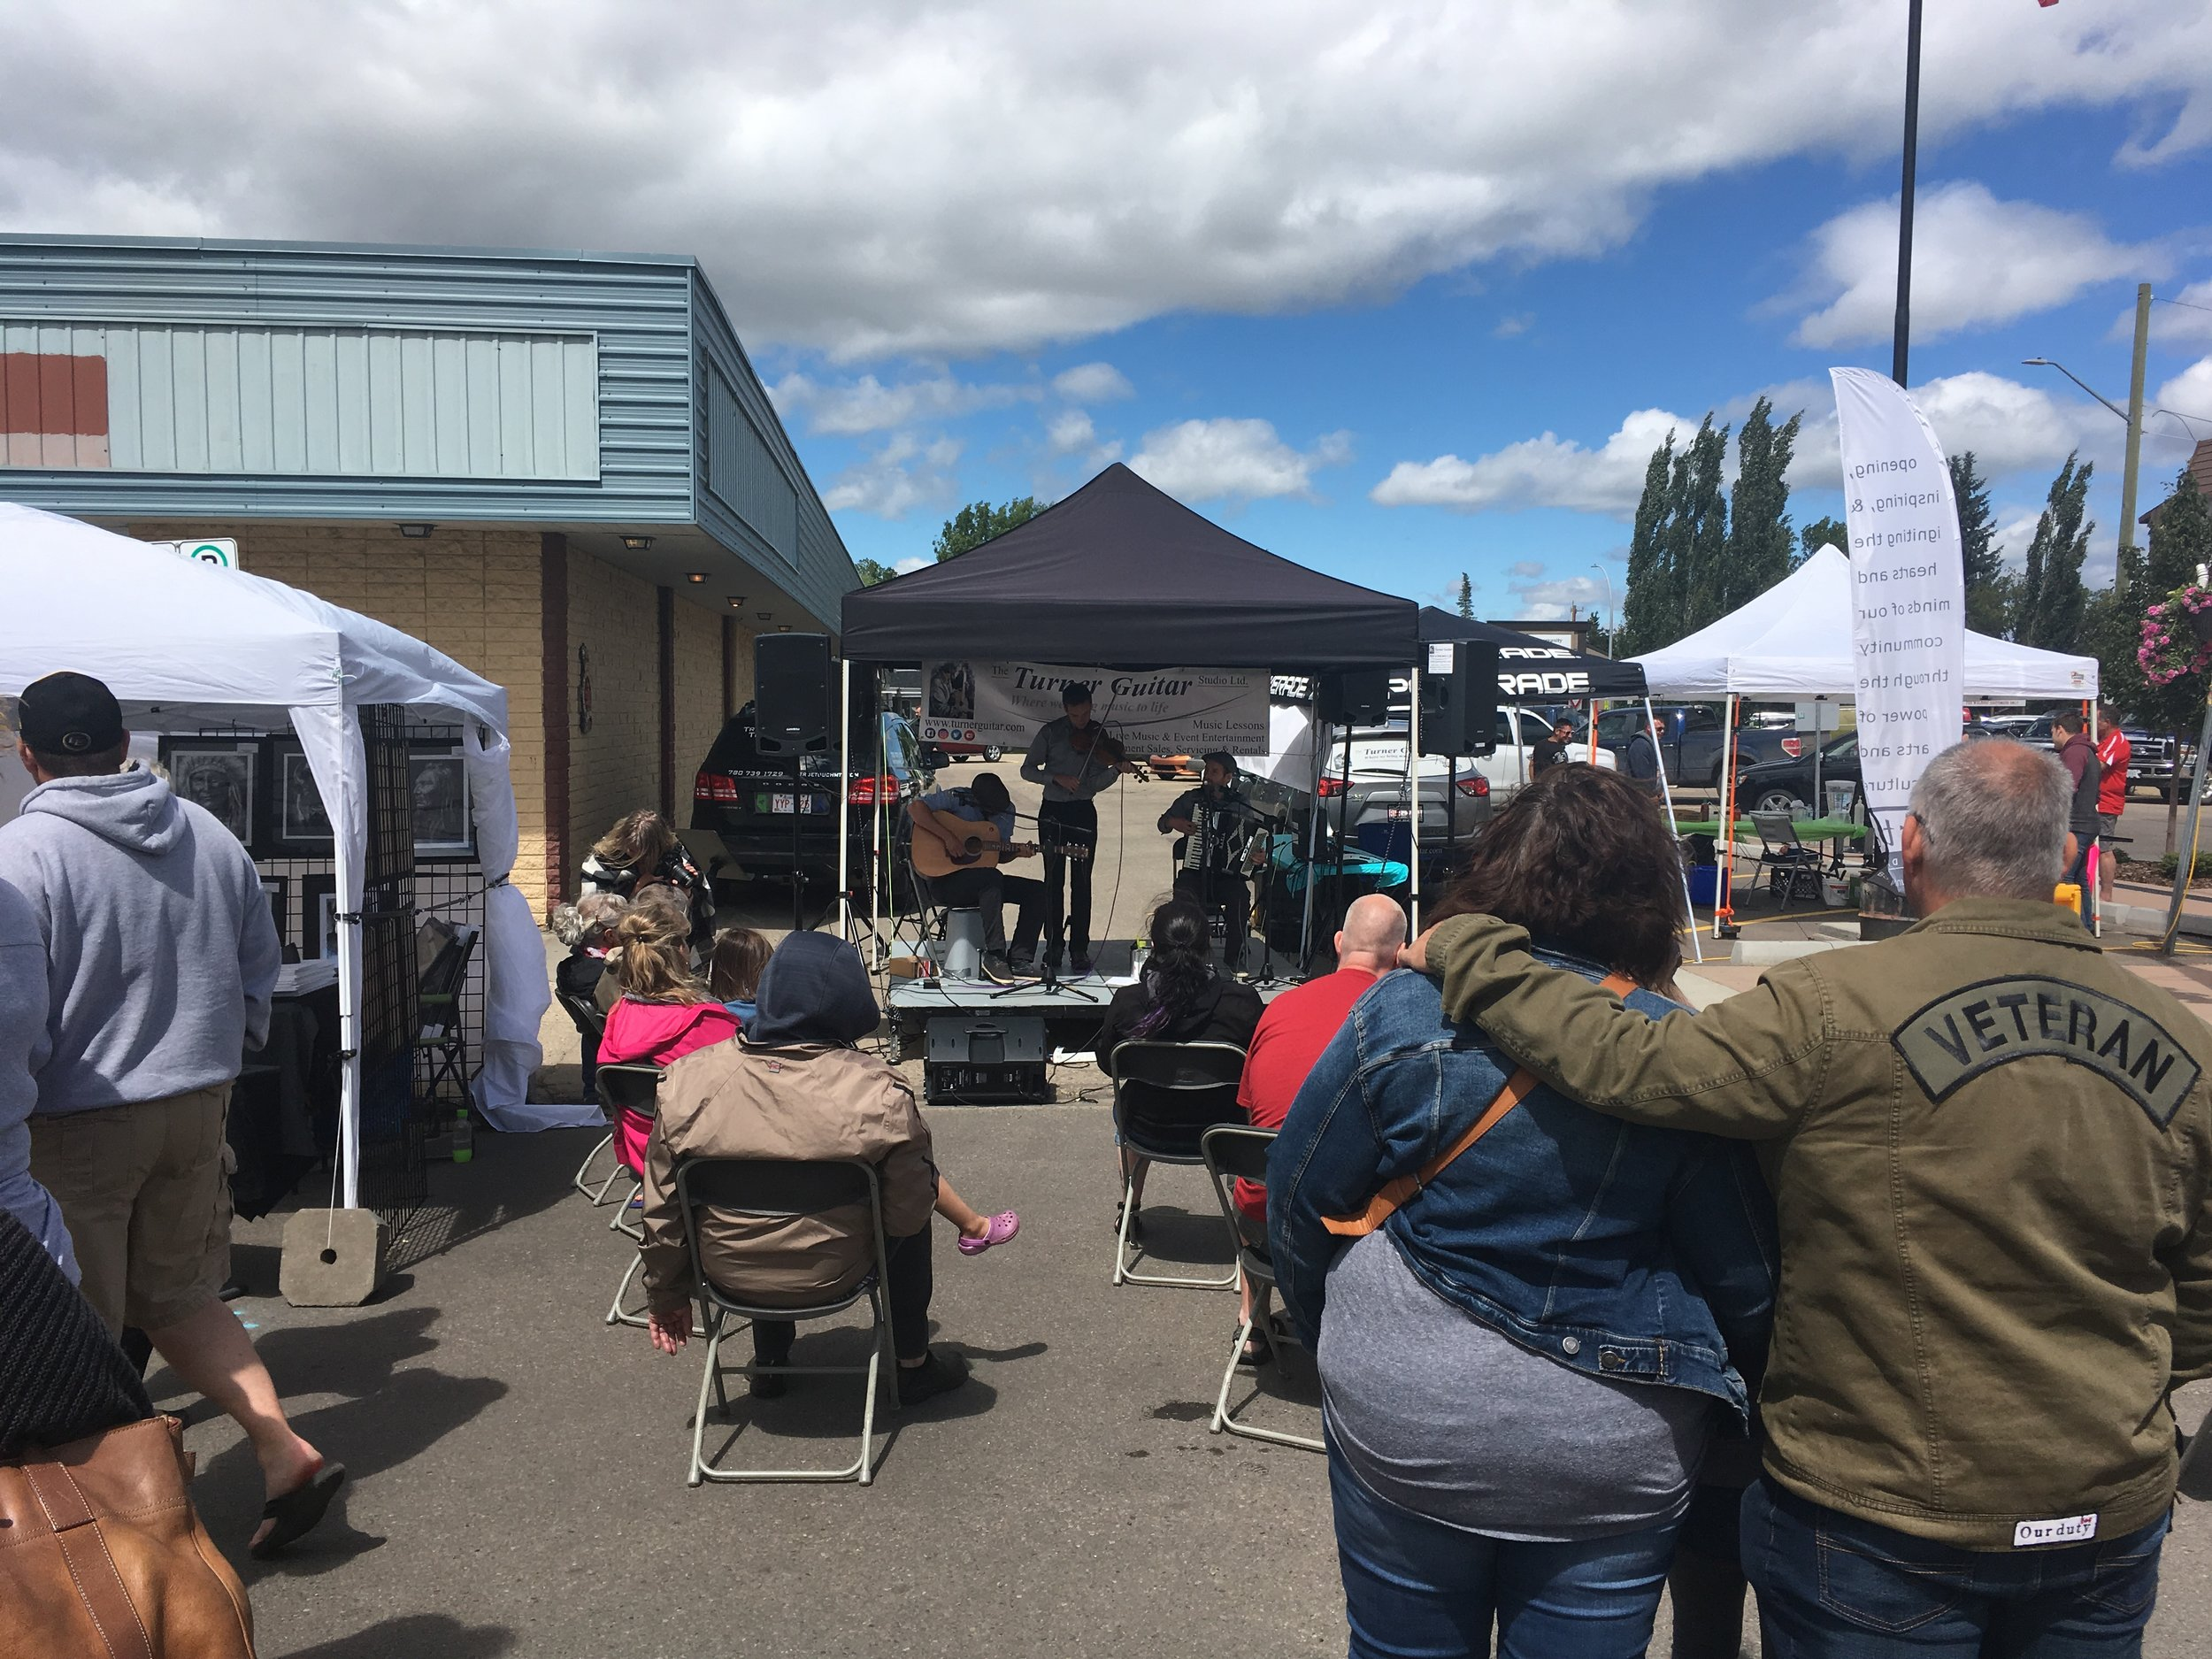 The Borch Brothers at the 2018 Leduc Art Walk